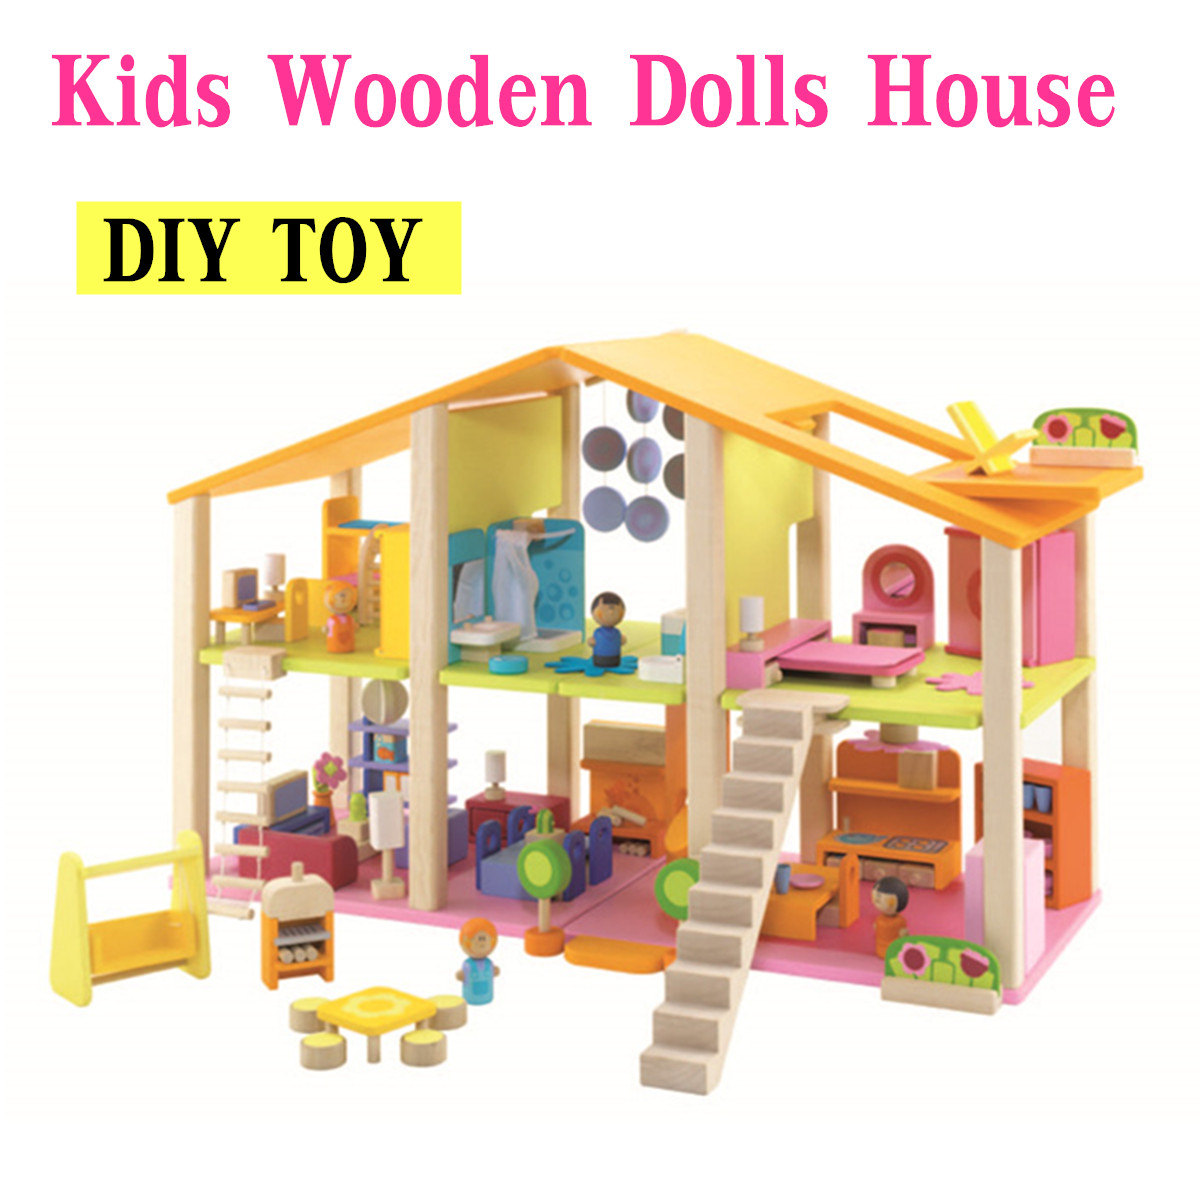 27 5 X 10 6 X 17 7 Large Wooden Dollhouse With Full